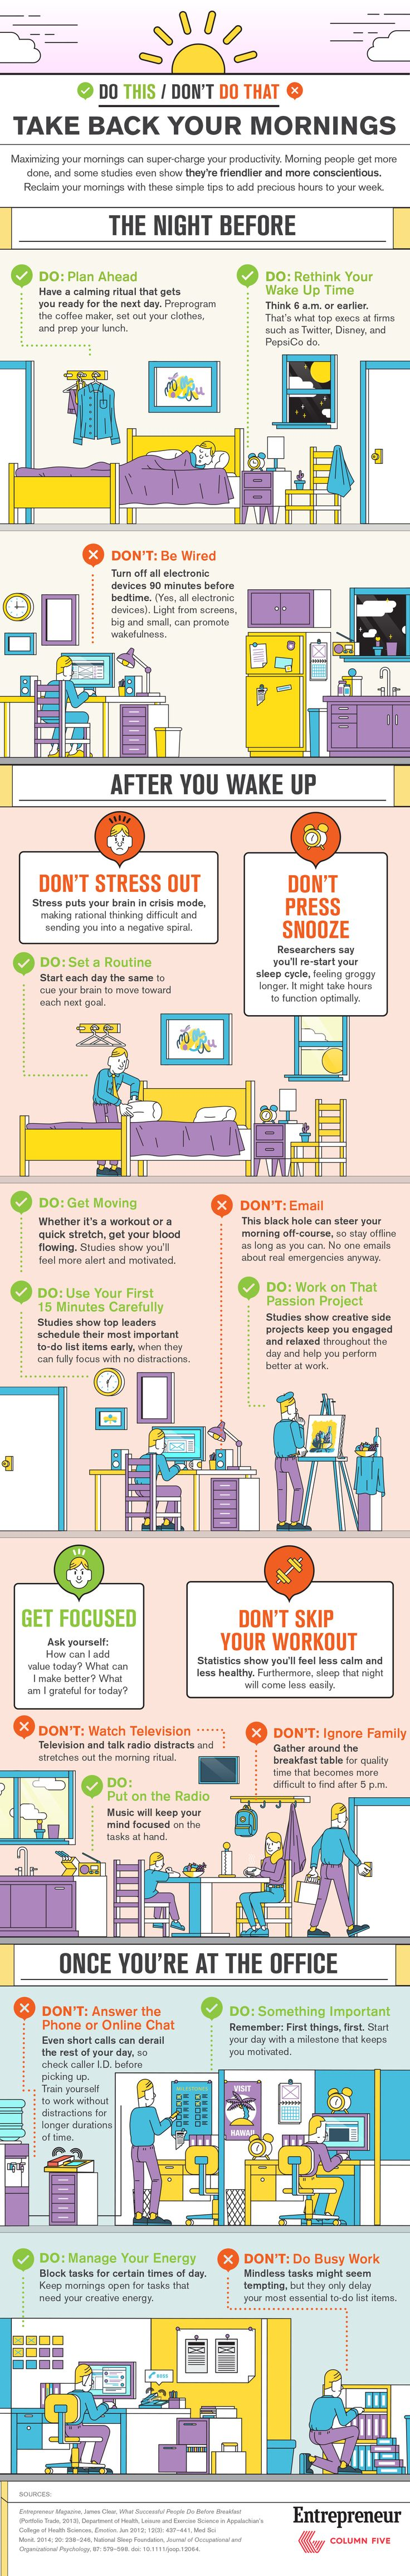 This #infographic explains how to make the most out of your mornings.  #mornings #selfimprovment